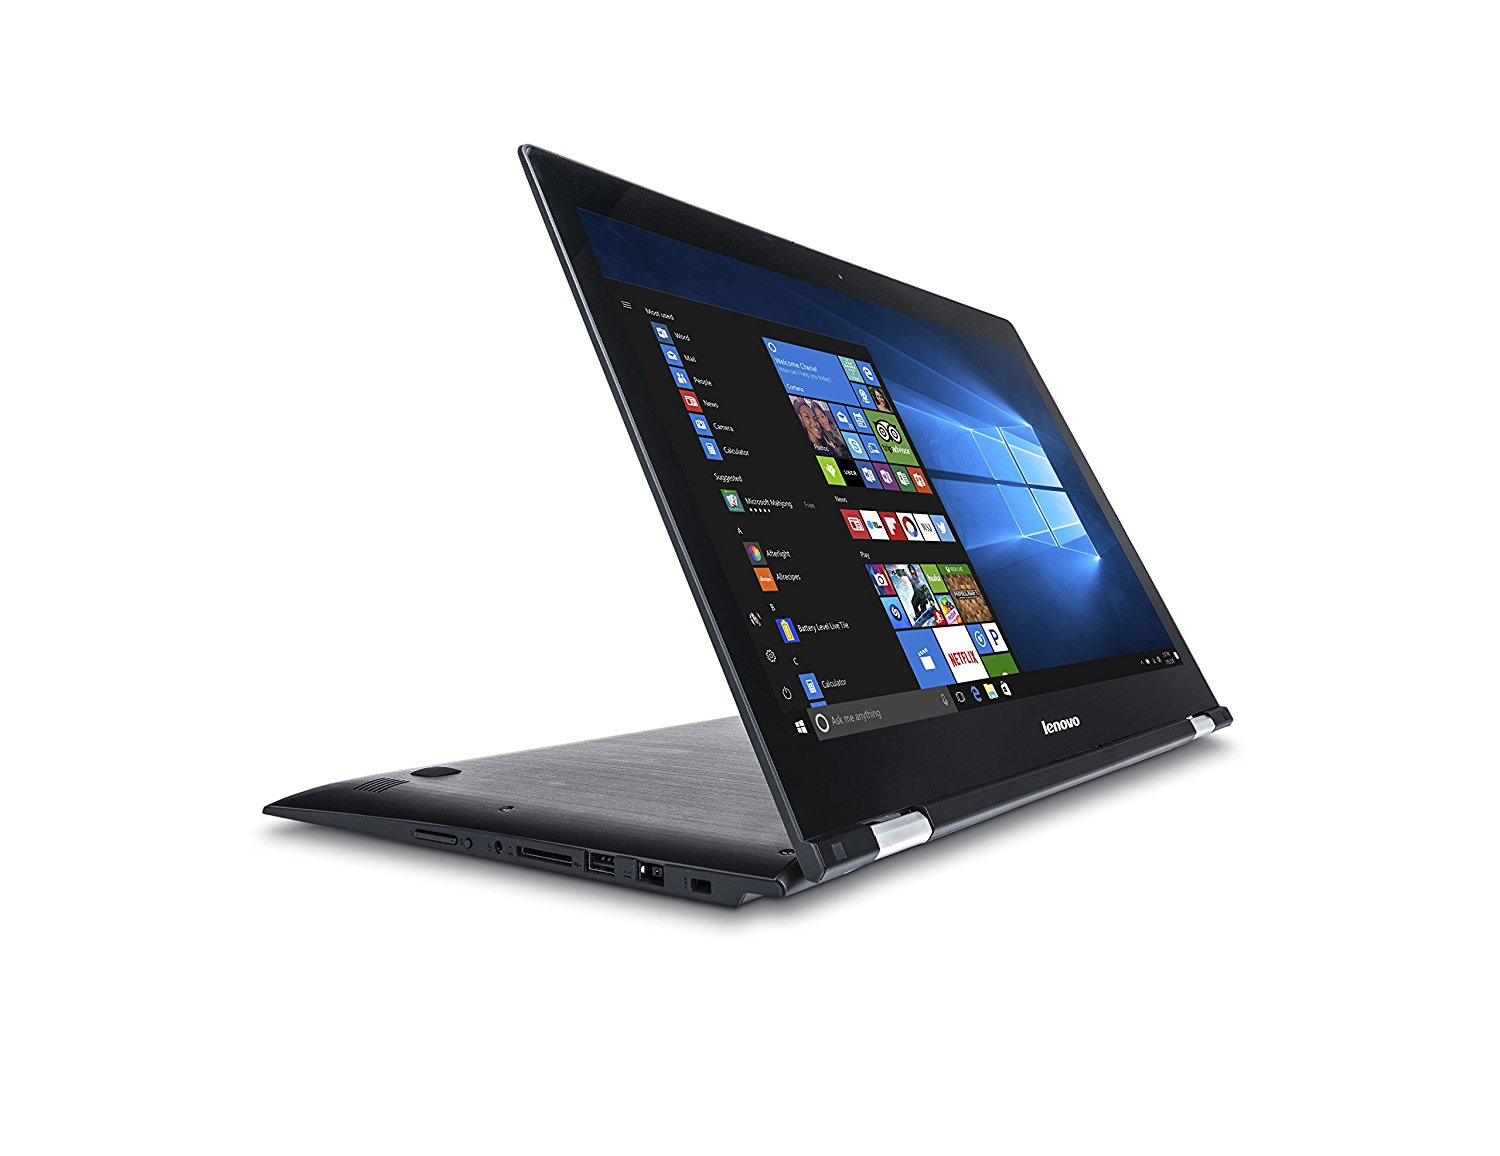 "Lenovo Edge 2 1580 15.6"" Full HD IPS 2-in-1 Touchscreen Notebook Computer, Intel Core i7-6500U 2.5GHz, 8GB RAM, 1TB HDD, Windows 10 Home"